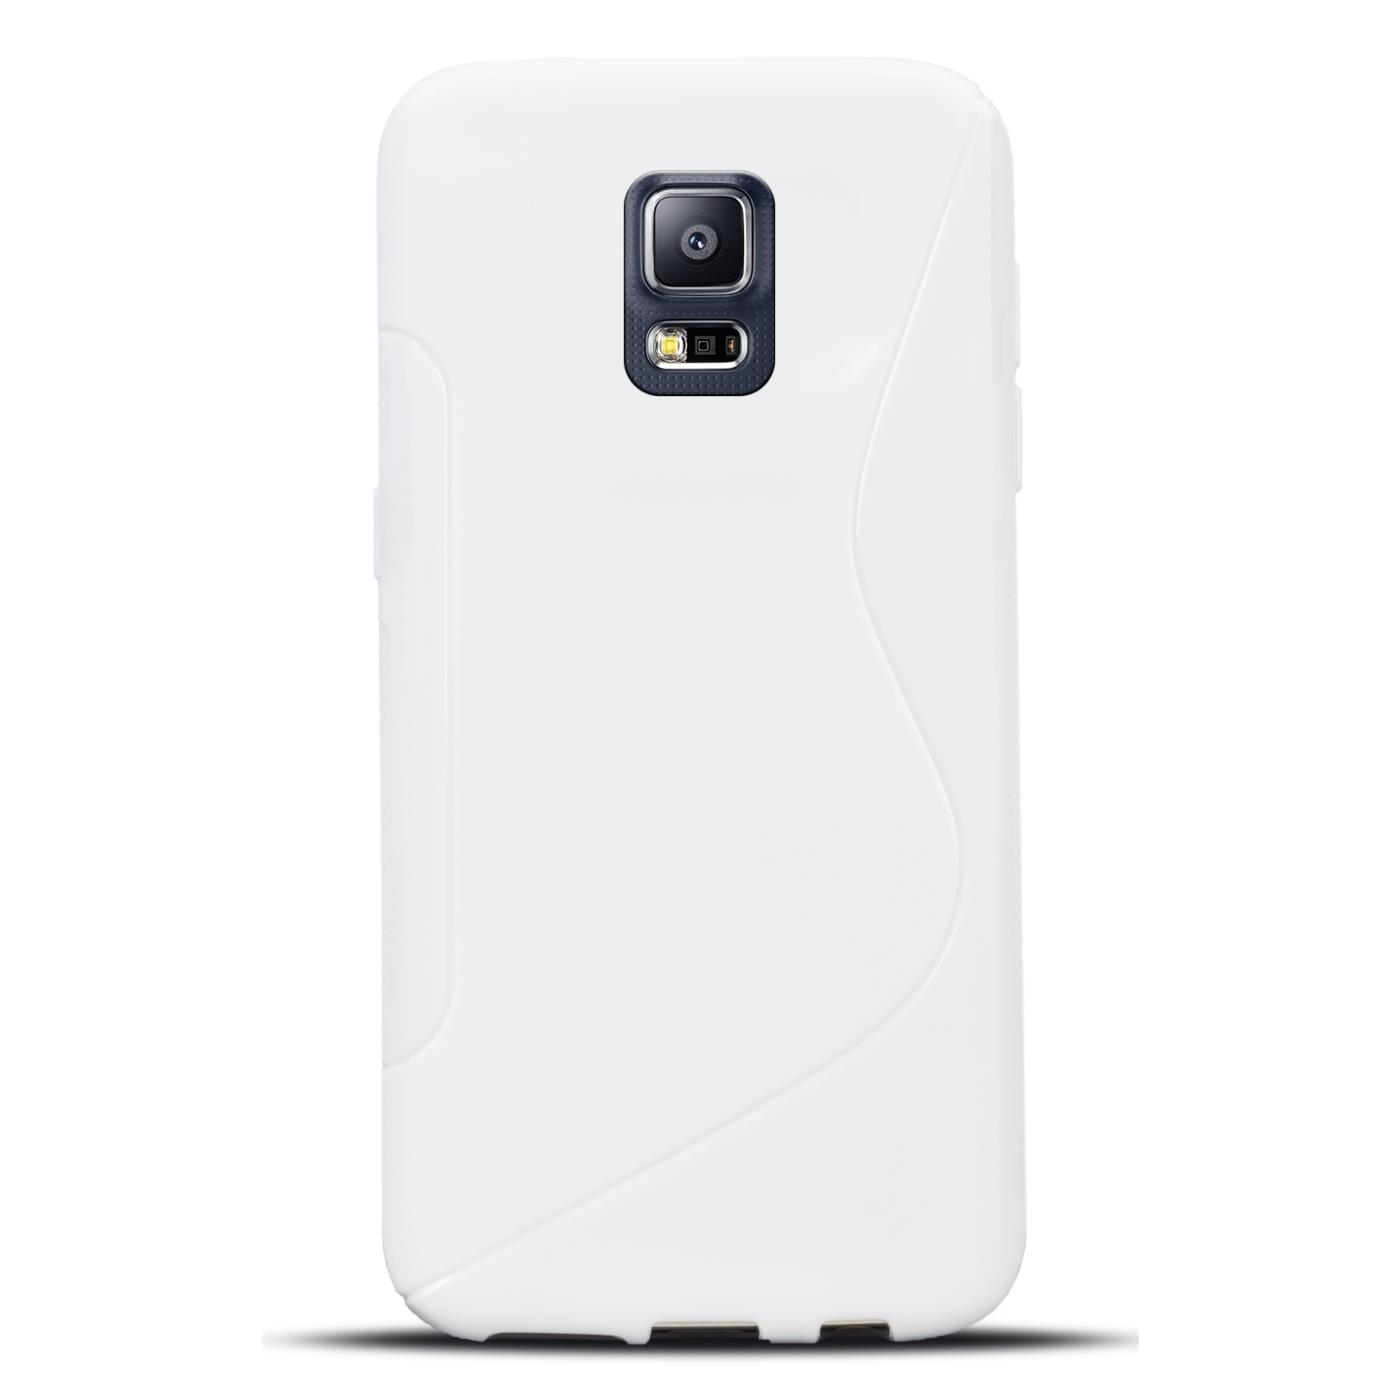 Samsung-Galaxy-s5-Neo-Silikon-Gel-S-Line-Case-Cover-Ultra-Thin-Slim-Back-Bumper Indexbild 28